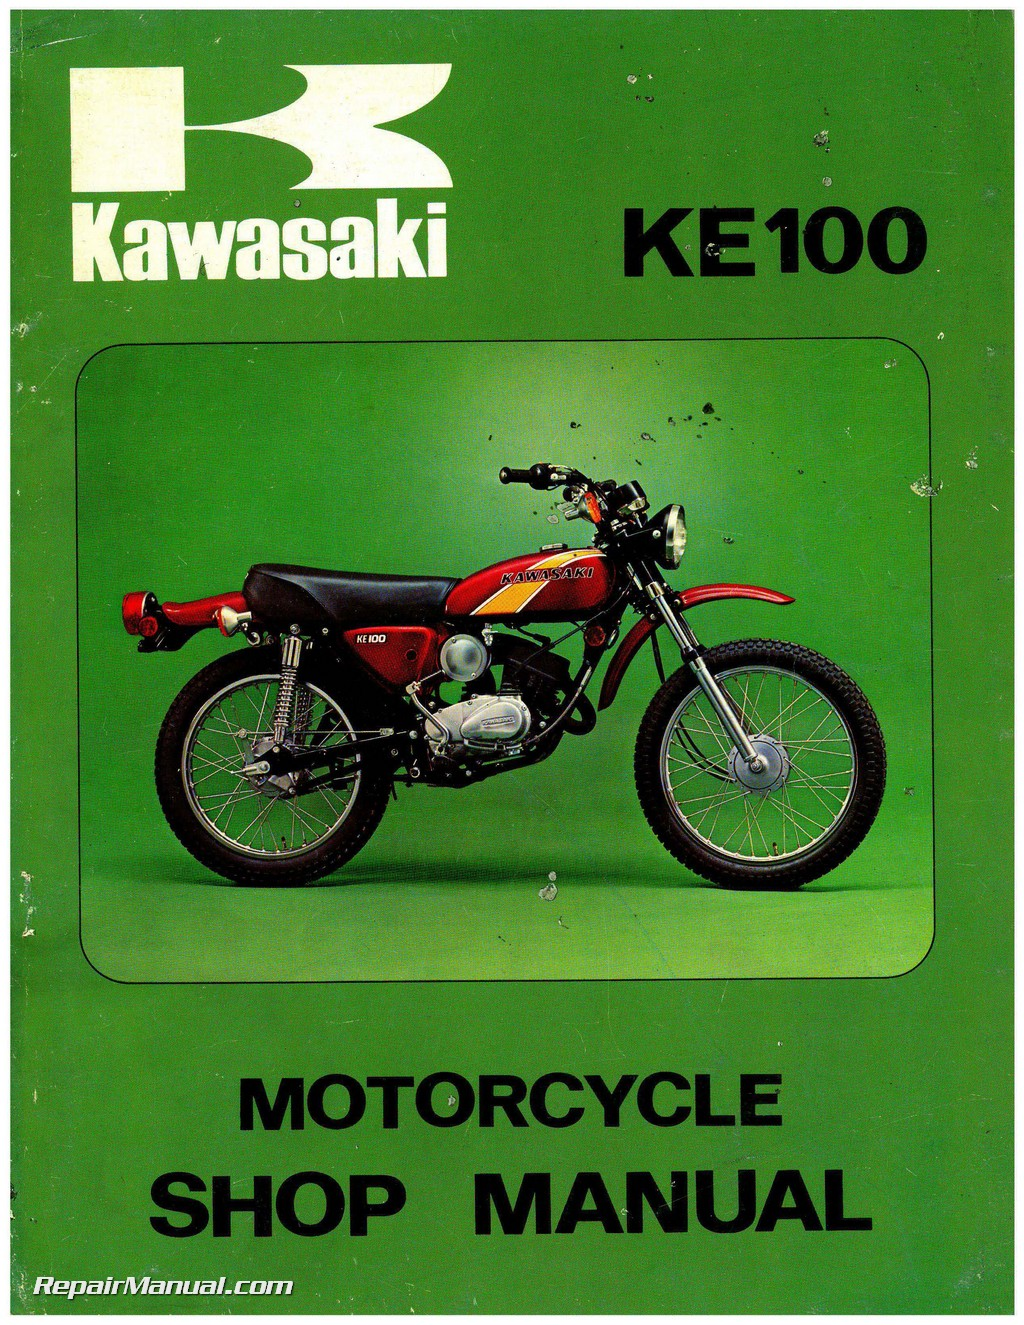 5EE3A Kawasaki Ke 100 Wiring Diagram | Digital Resources on friendship bracelet diagrams, series and parallel circuits diagrams, motor diagrams, troubleshooting diagrams, switch diagrams, lighting diagrams, battery diagrams, led circuit diagrams, hvac diagrams, honda motorcycle repair diagrams, engine diagrams, smart car diagrams, internet of things diagrams, gmc fuse box diagrams, pinout diagrams, sincgars radio configurations diagrams, electrical diagrams, electronic circuit diagrams, transformer diagrams,